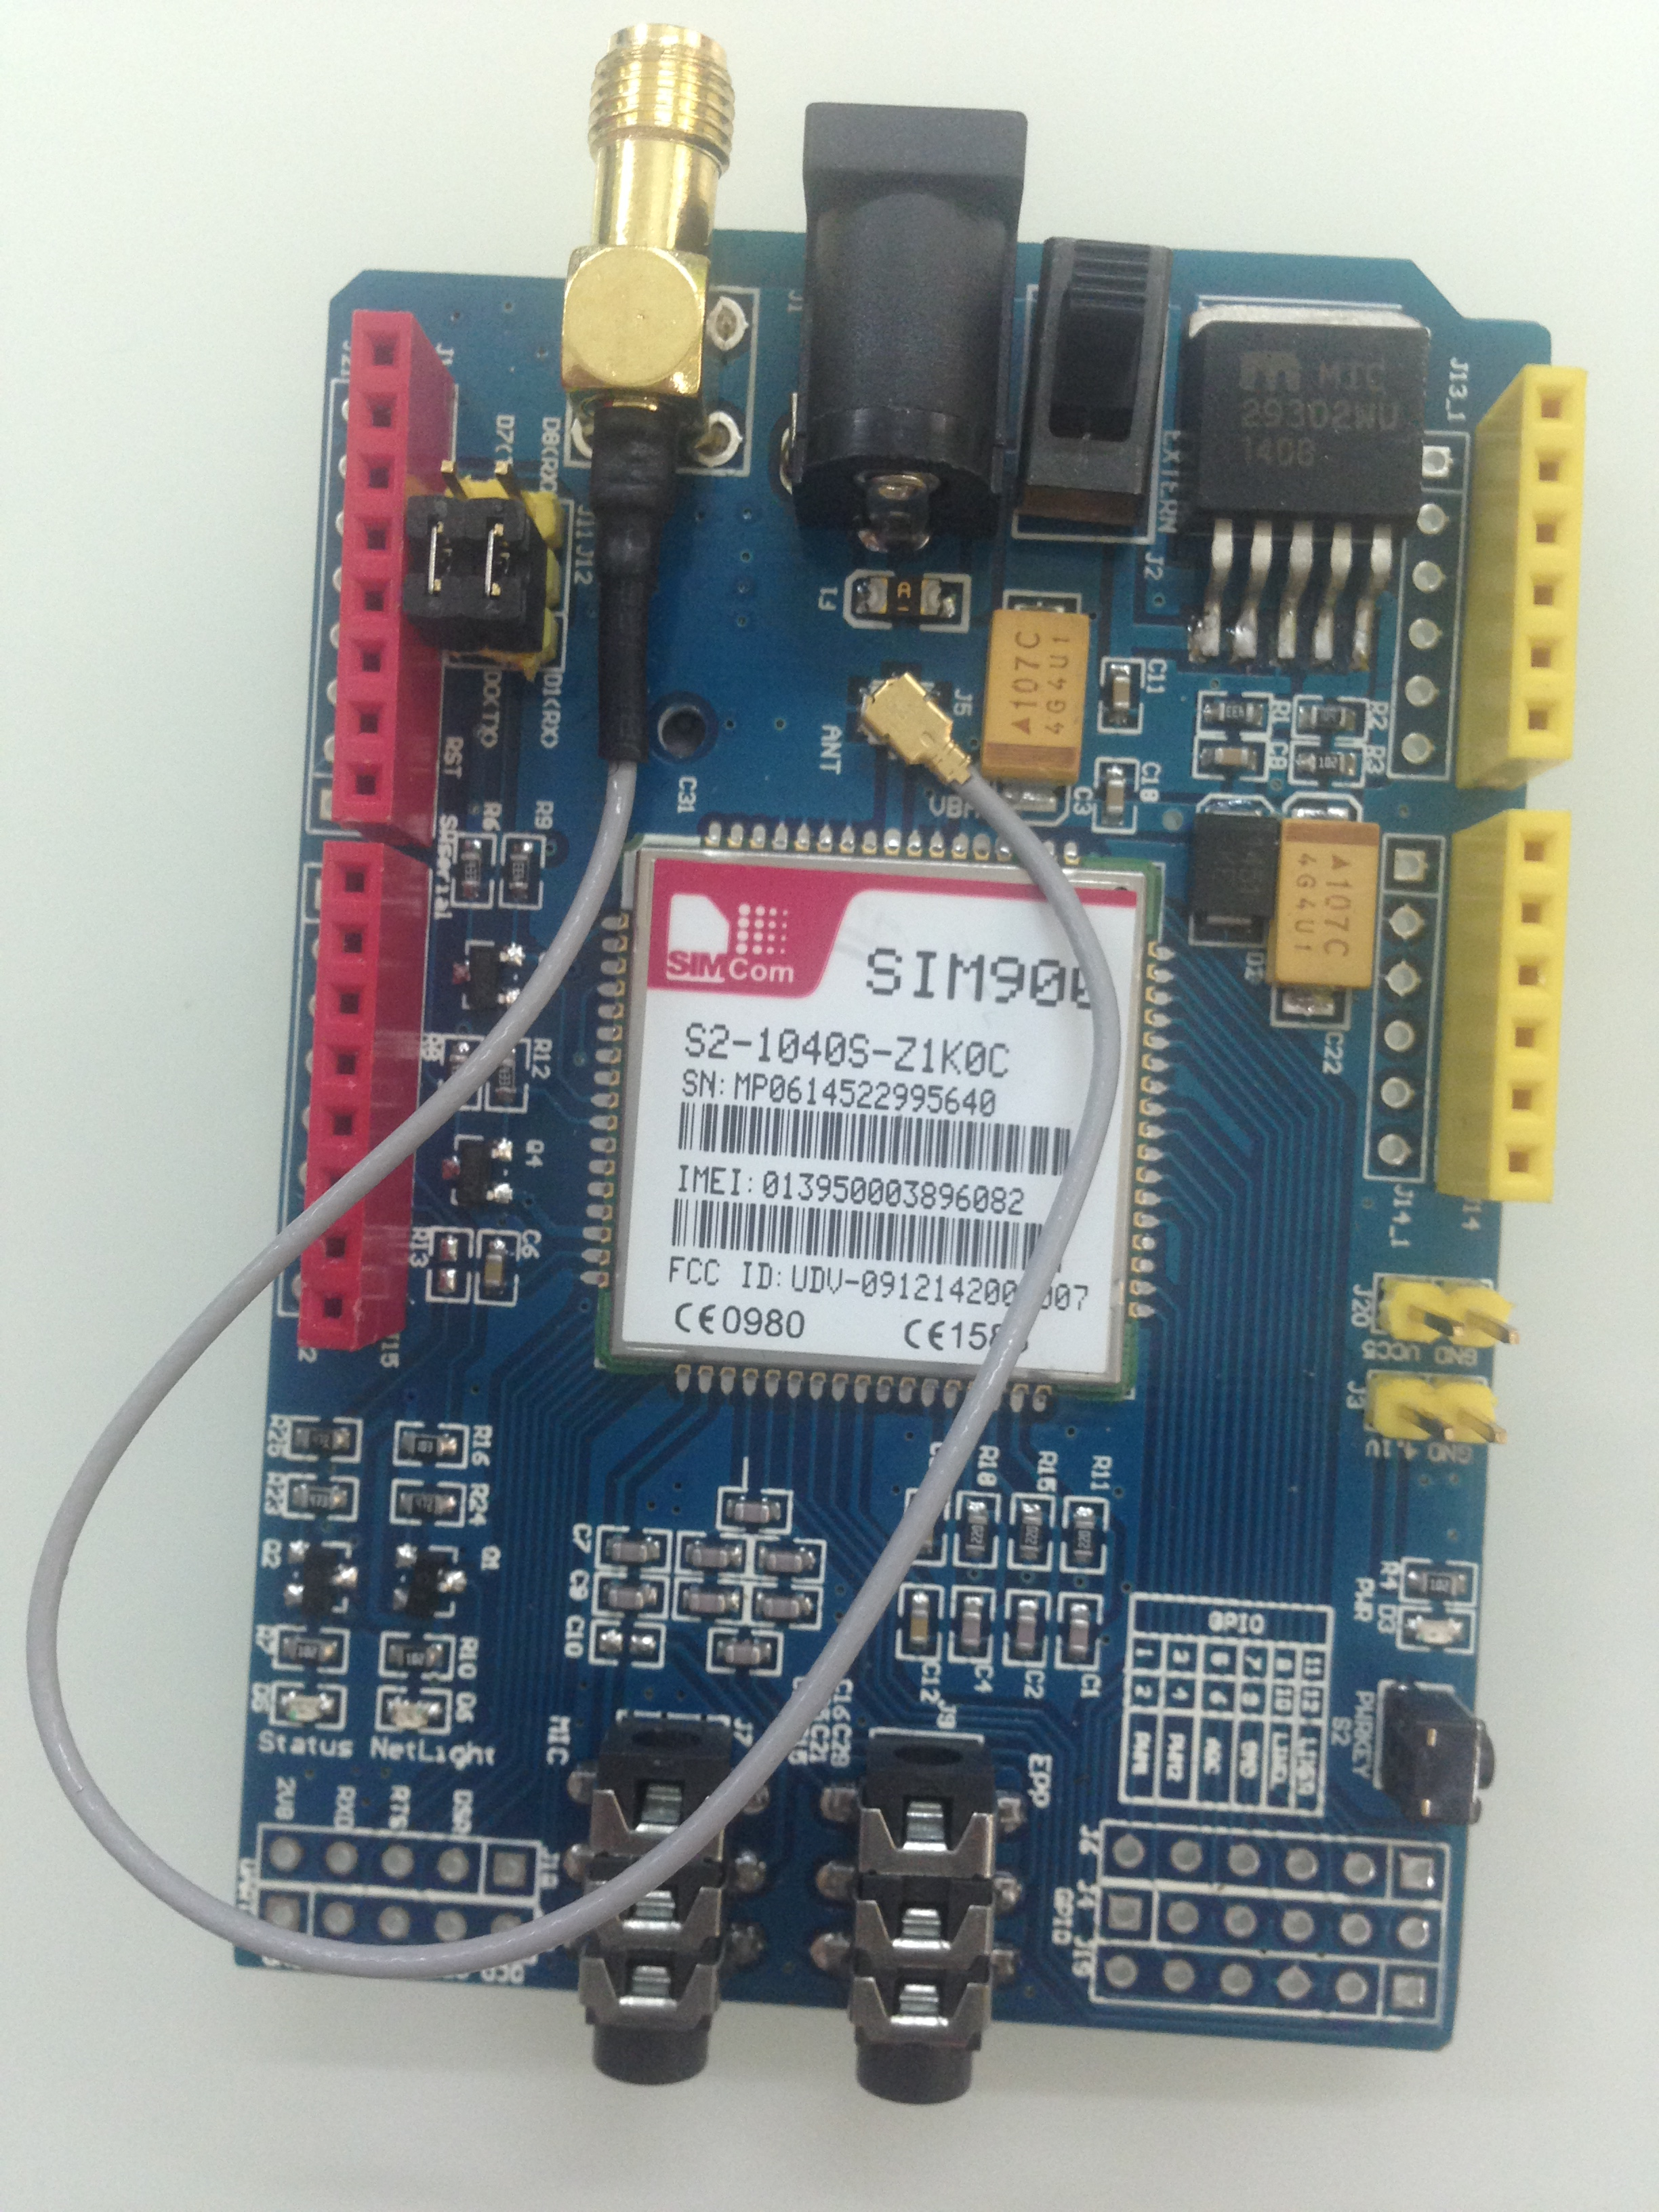 Sim gprs gsm shield board quad band module kit for